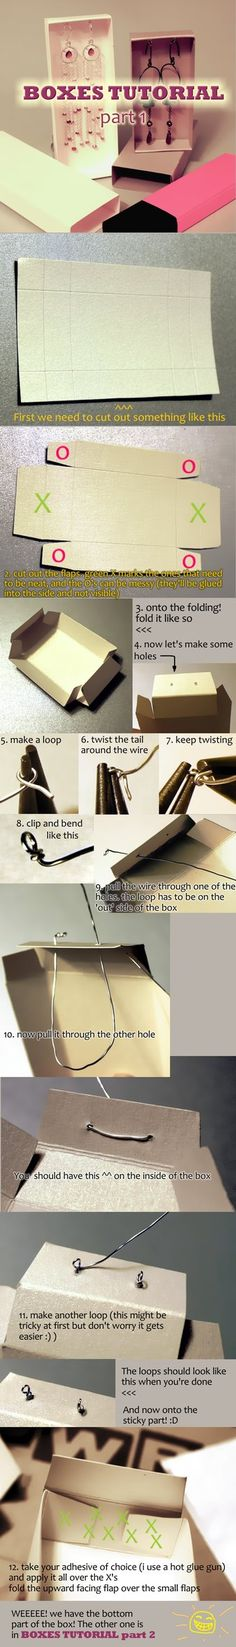 Tutorial - jewelry boxes part 1 by ~IMNIUM on deviantART (part 2: http://imnium.deviantart.com/gallery/?q=part#/d25oixh )